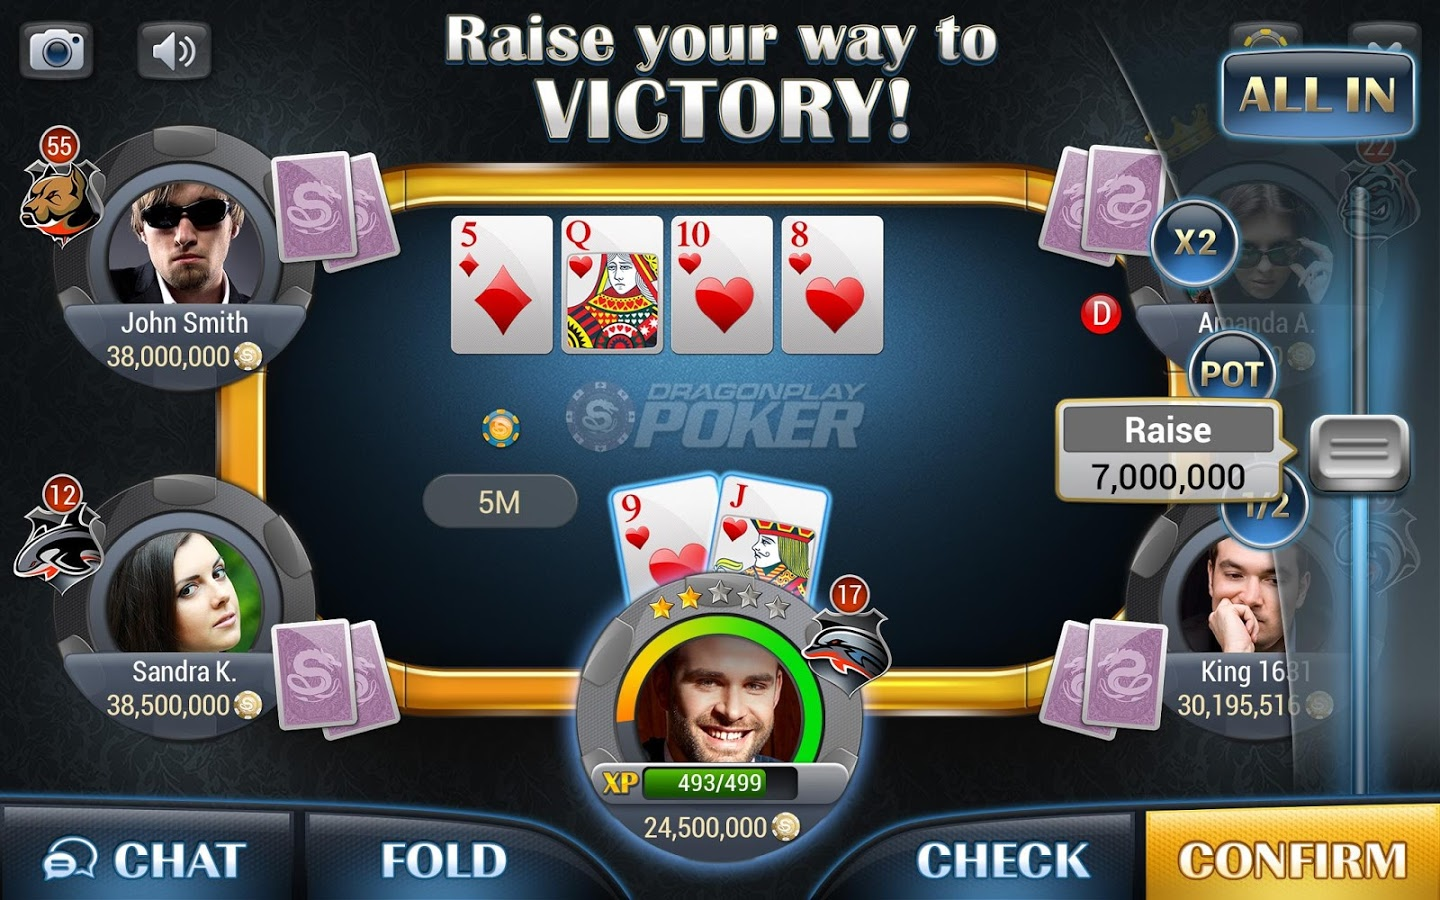 Dragonplay poker-texas holdem apk